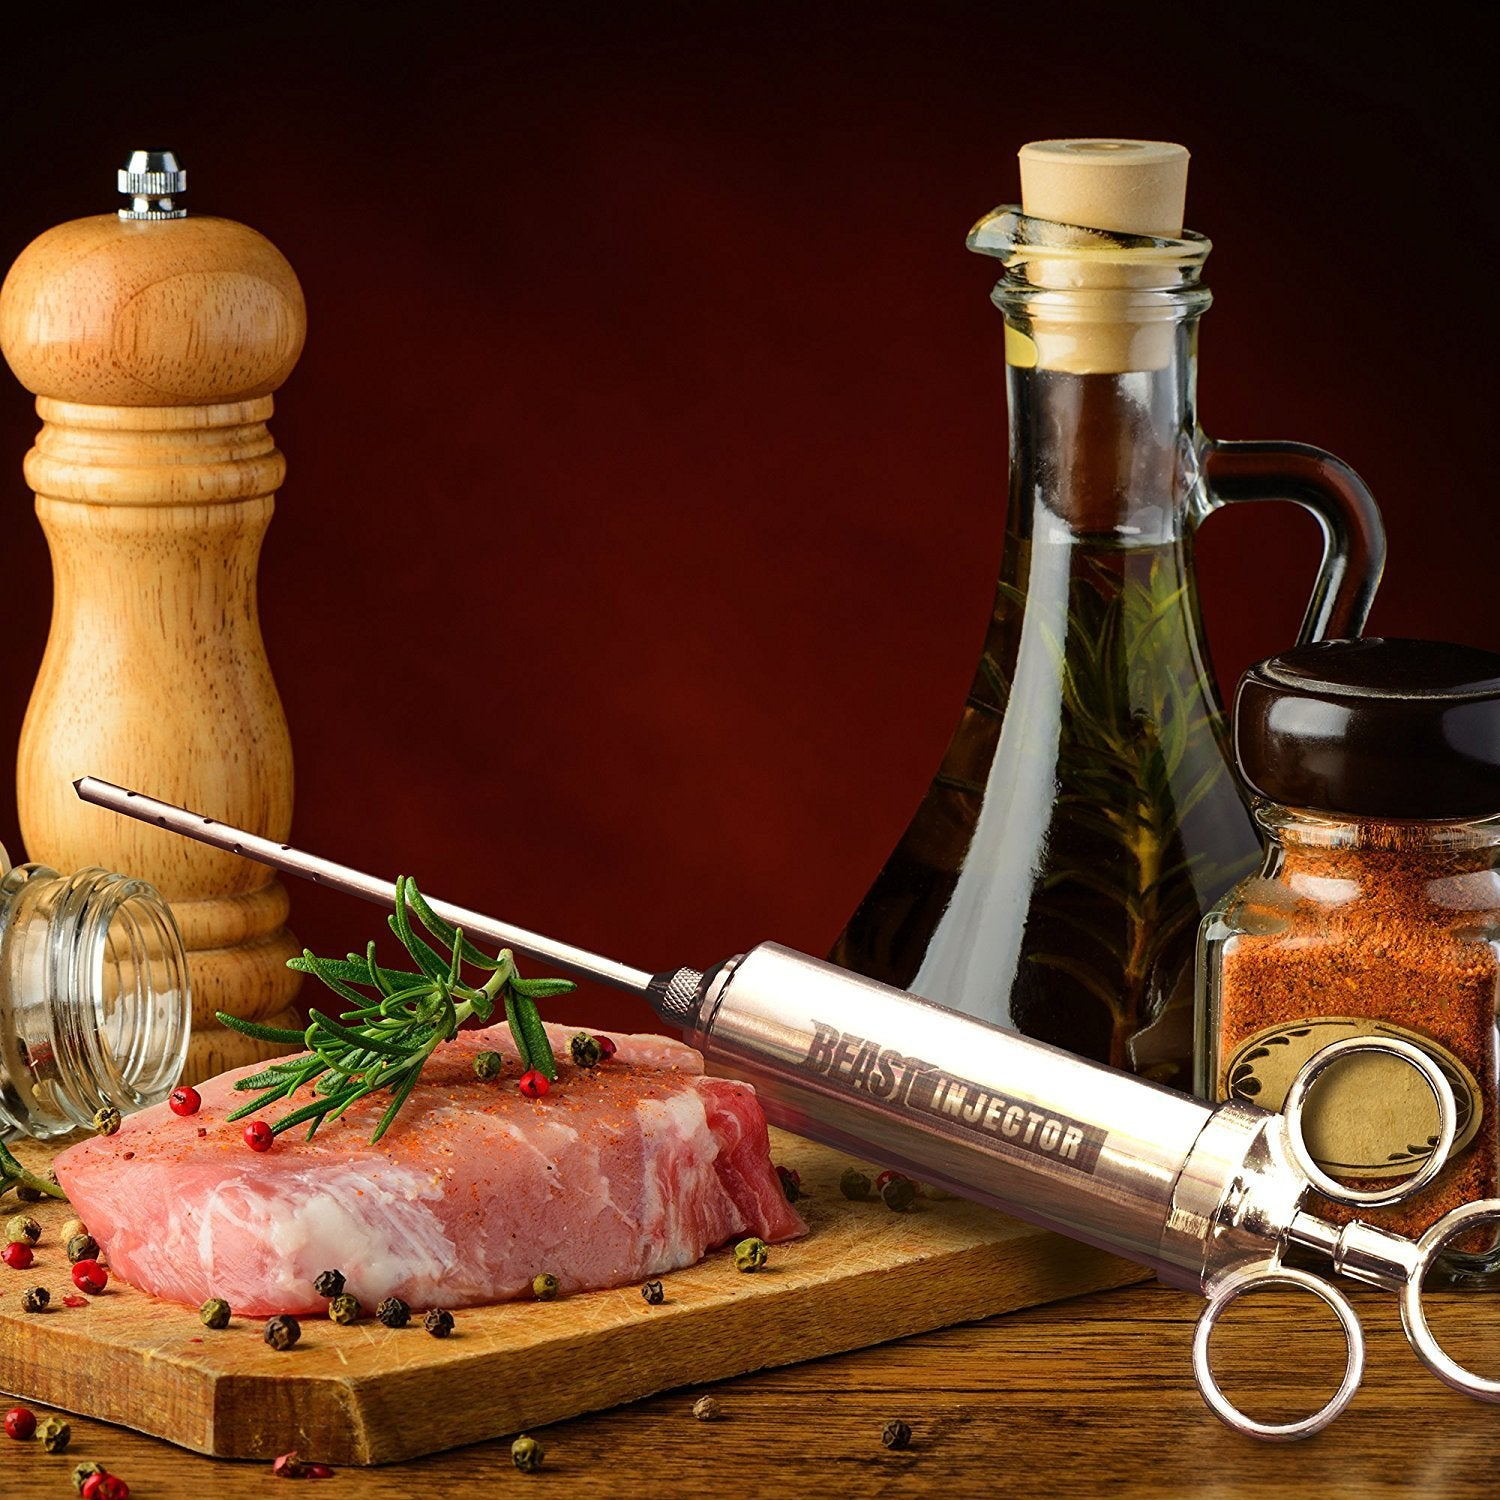 Three Key Features You Want in a Marinade Injector